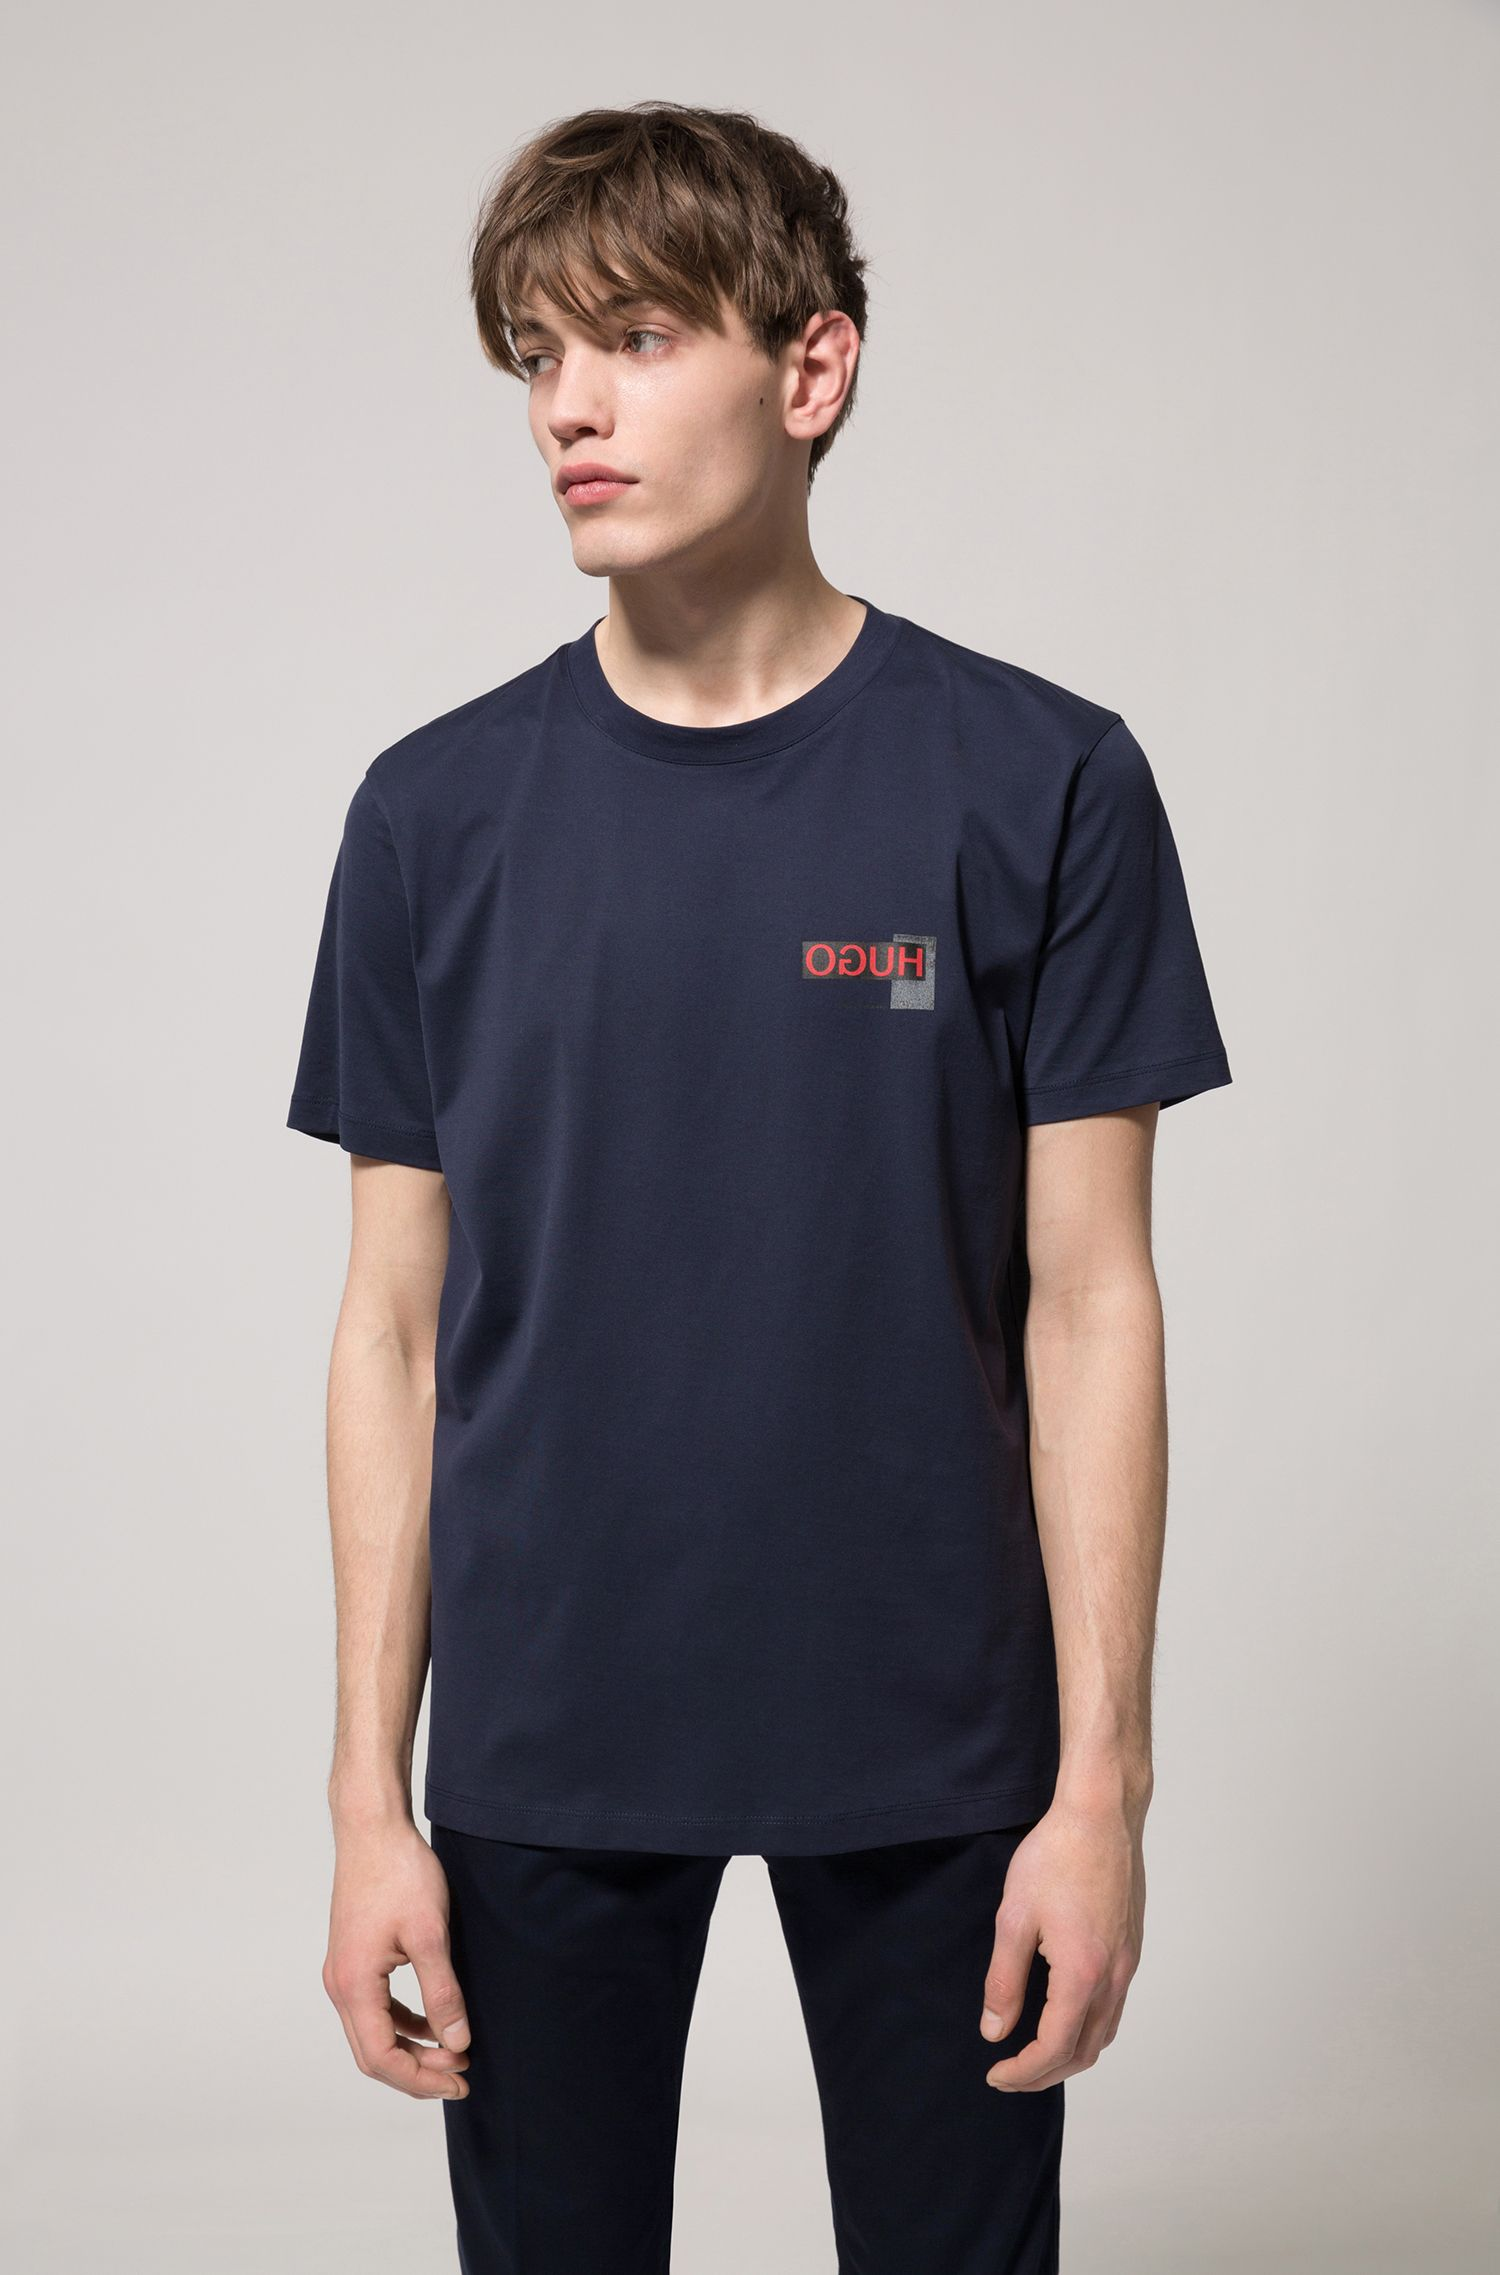 Oversized-fit T-shirt with reverse logo print